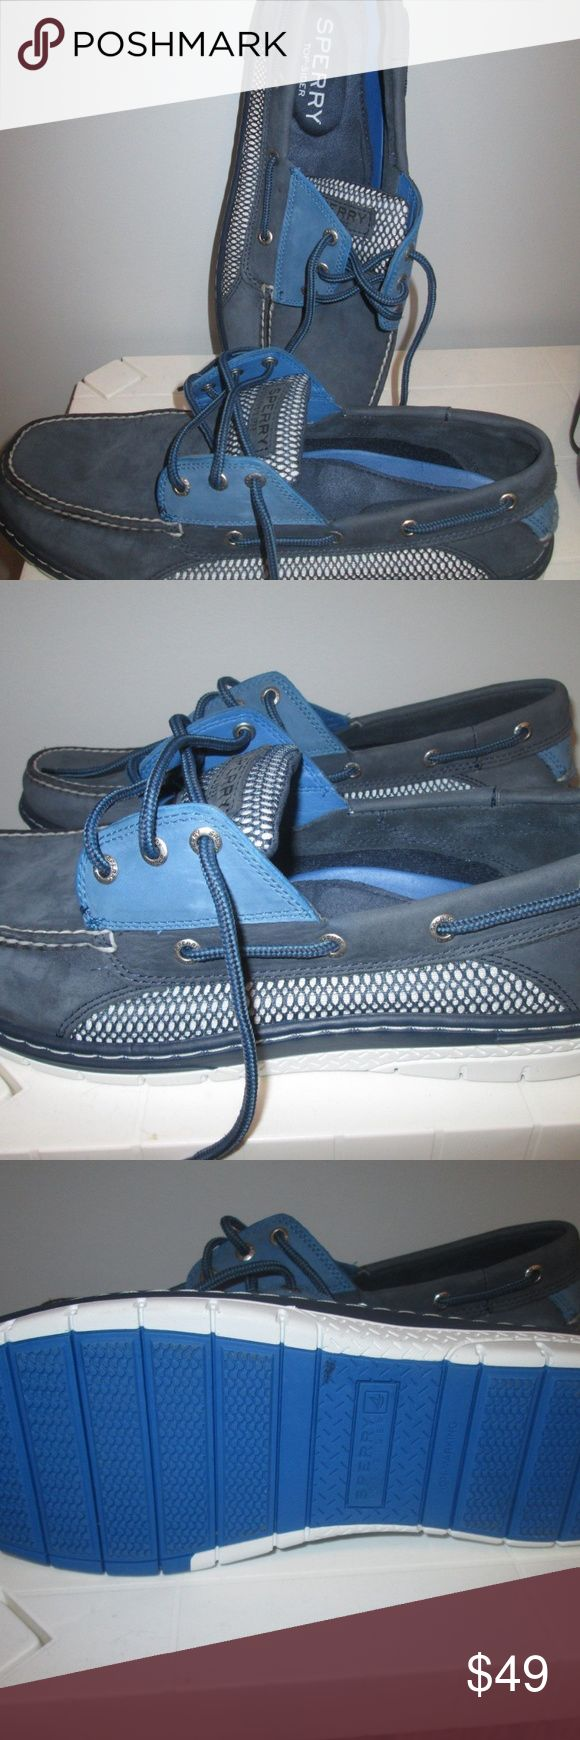 Men's Sperry Top-Sider Blue Shoes Size 13M I carefully search Thrift stores and Garage sales for nice clothing items. These are very nice clean high end items.  All items are checked for odor, holes and stains.  Smoke and pet free home Sperry Shoes Loafers & Slip-Ons